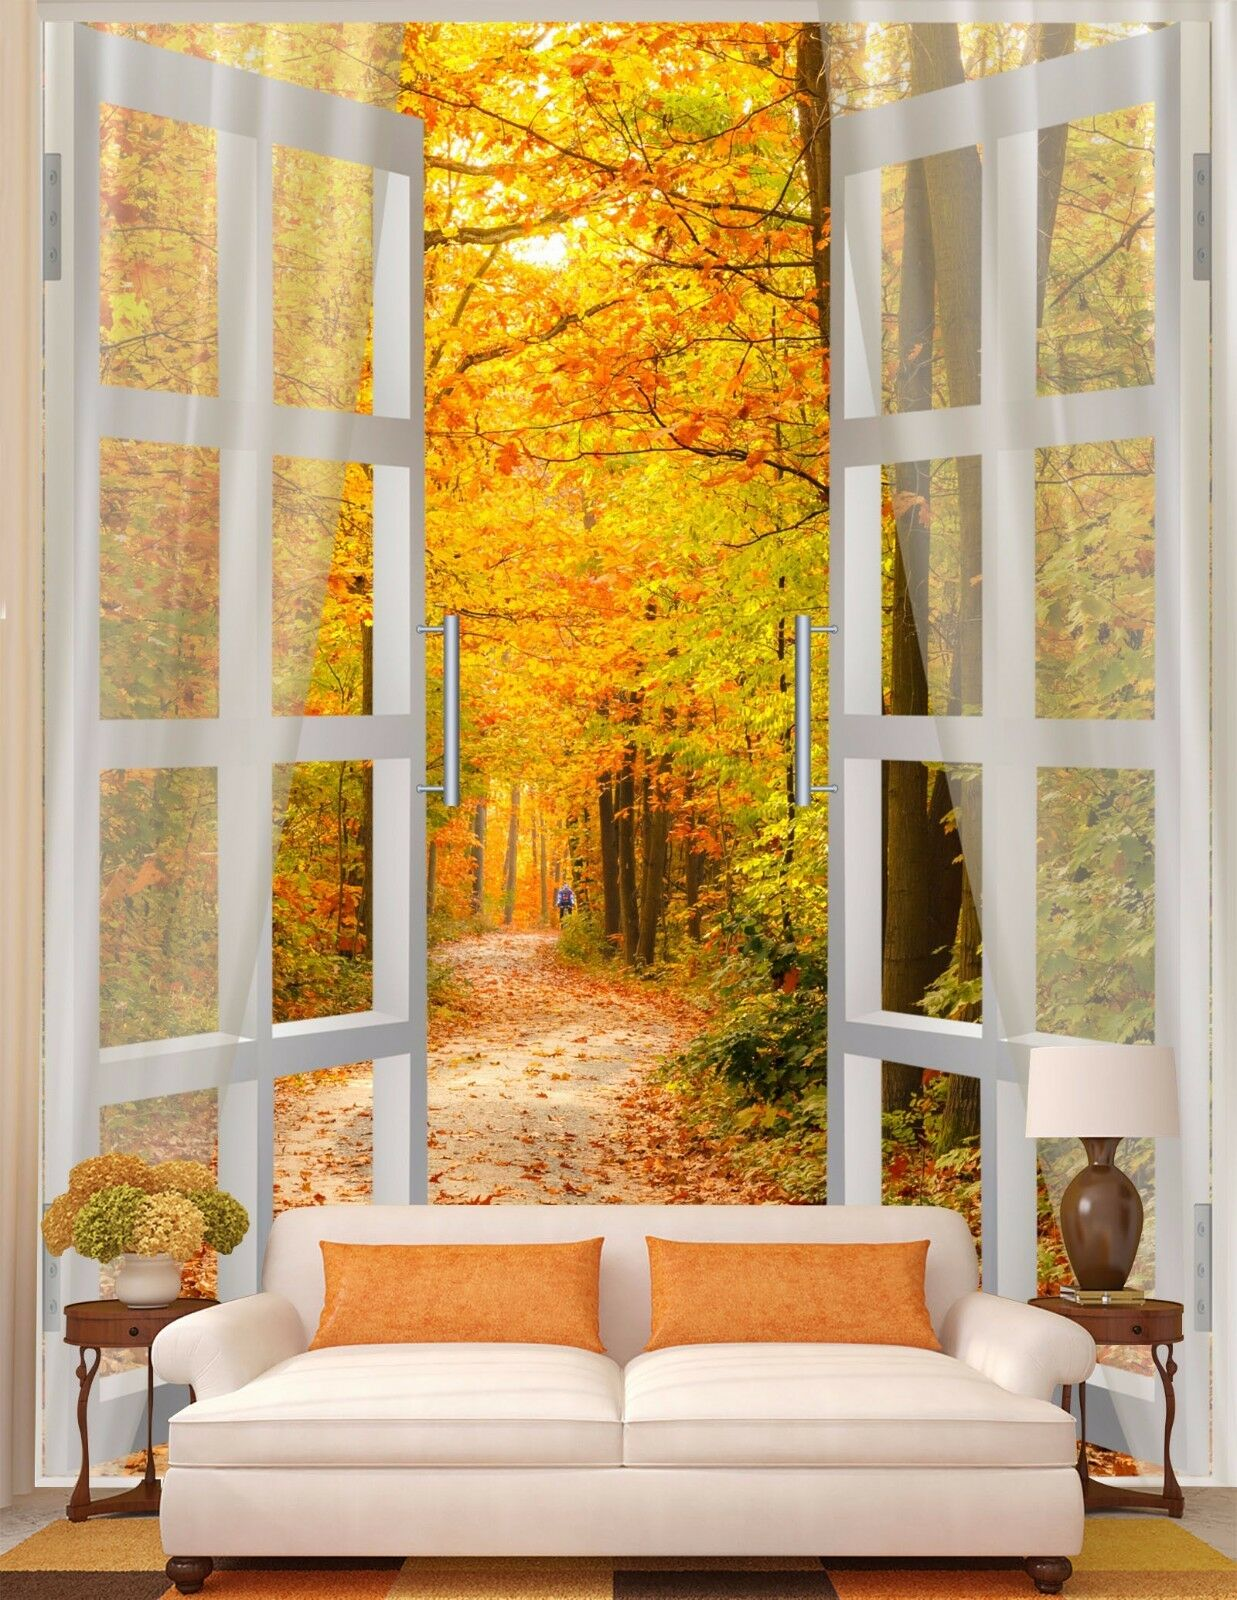 3D window view tree Wall Paper Wall Print Decal Wall Deco Indoor wall Mural Home